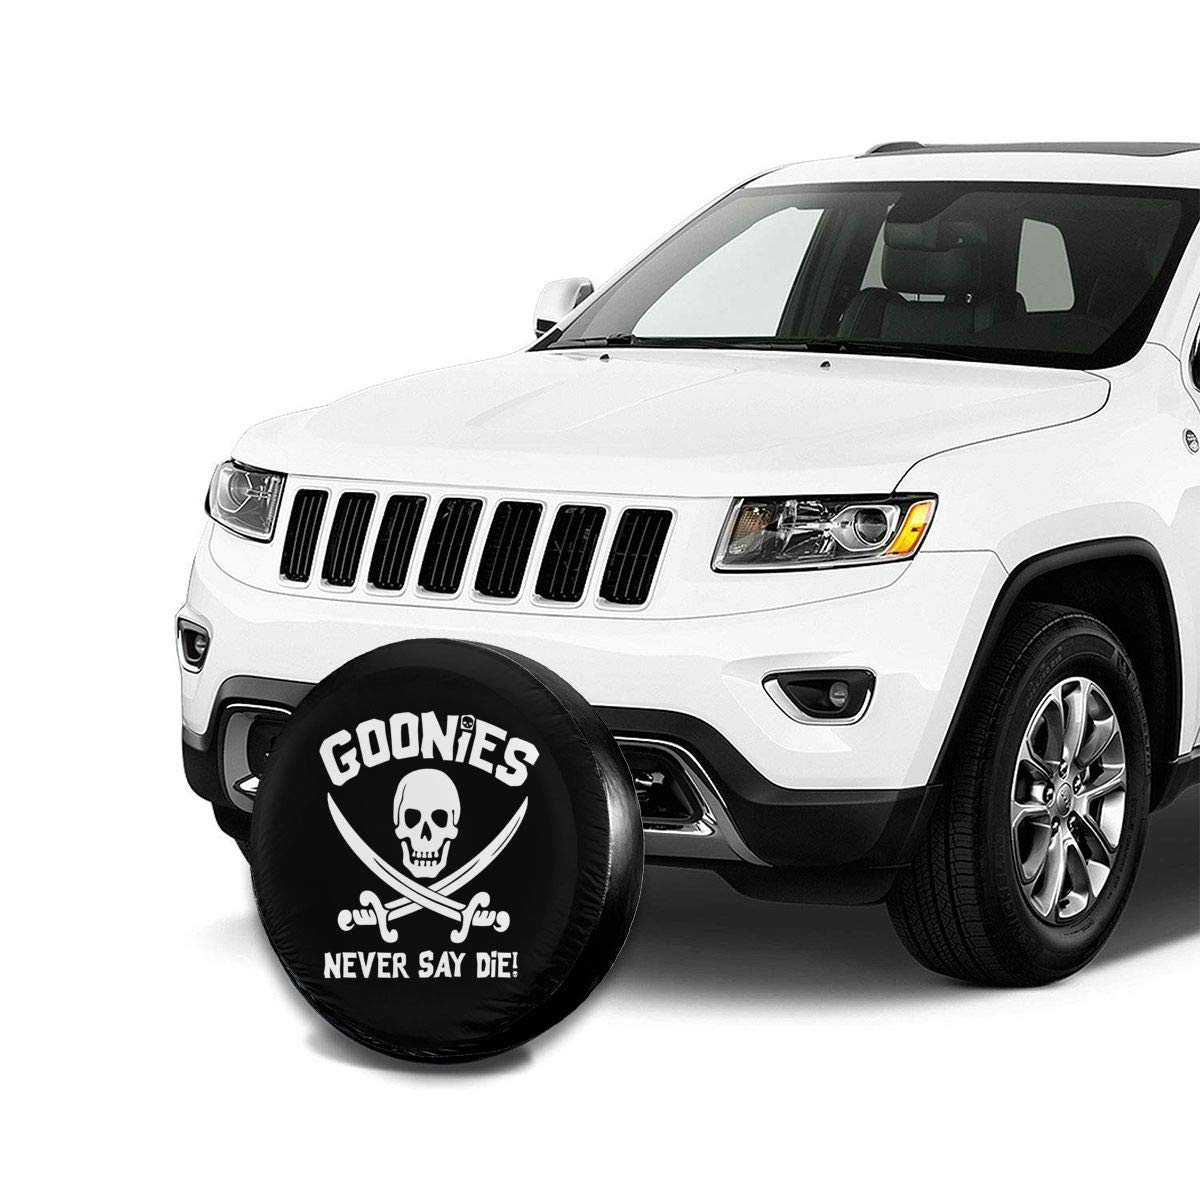 Goonies Never Say Die Spare Tire Cover Dust-Proof Universal Wheel Protector Fit for Jeep and Various Vehicles 14,15,16,17 Inch